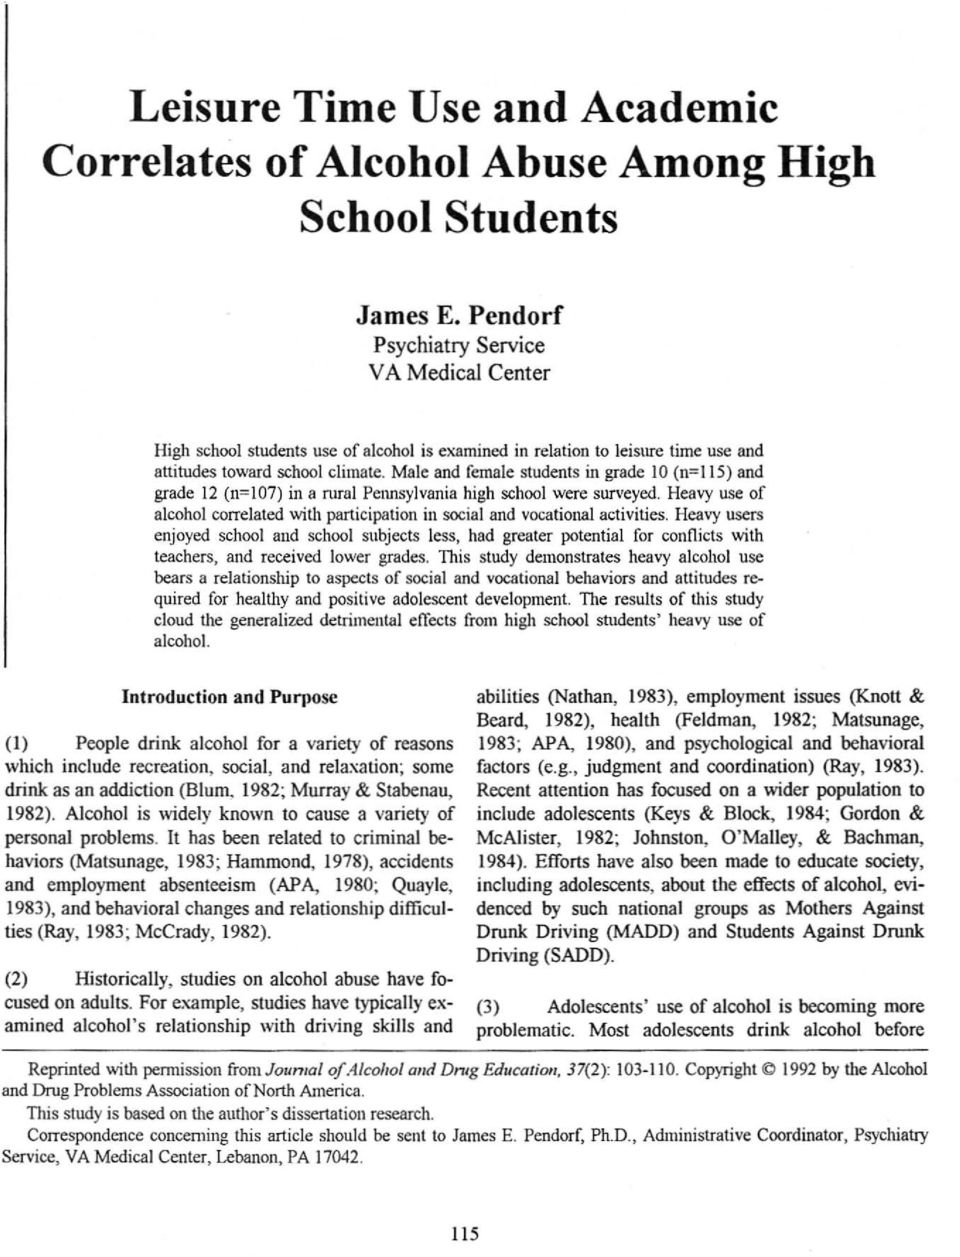 Male and female students in grade 10 (11=1 15) and grade 12 (n=107) in a rural Pennsylvania high school were surveyed.